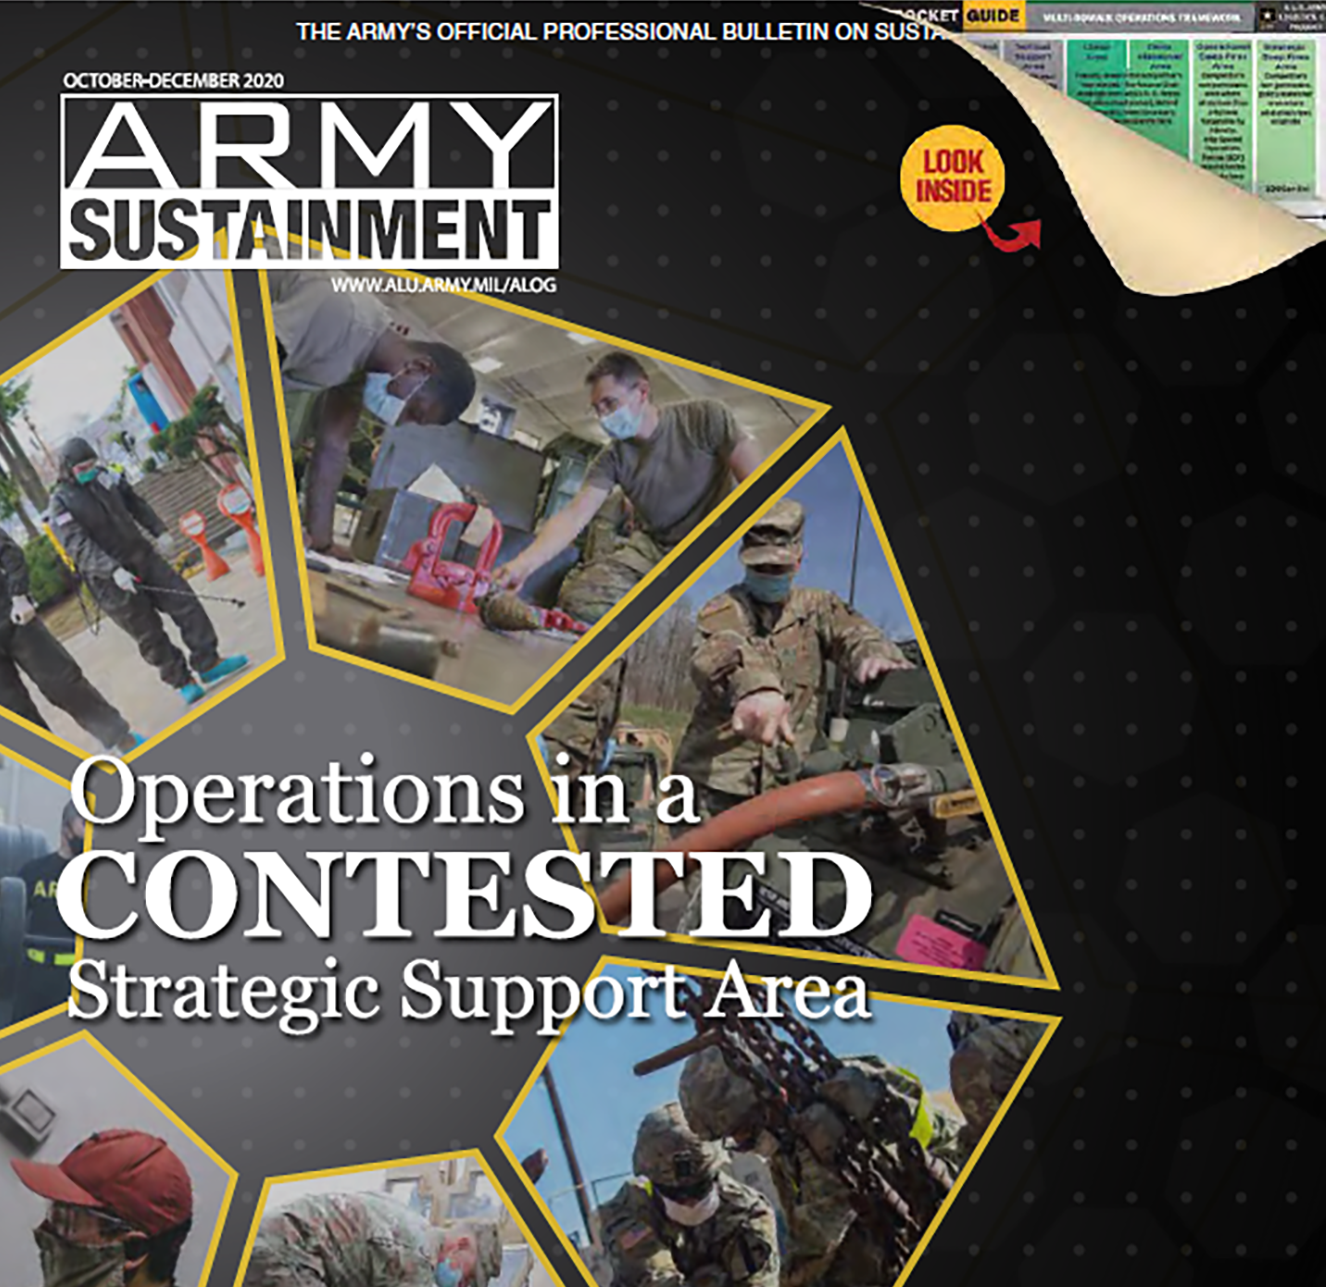 Army Sustainment Download Now